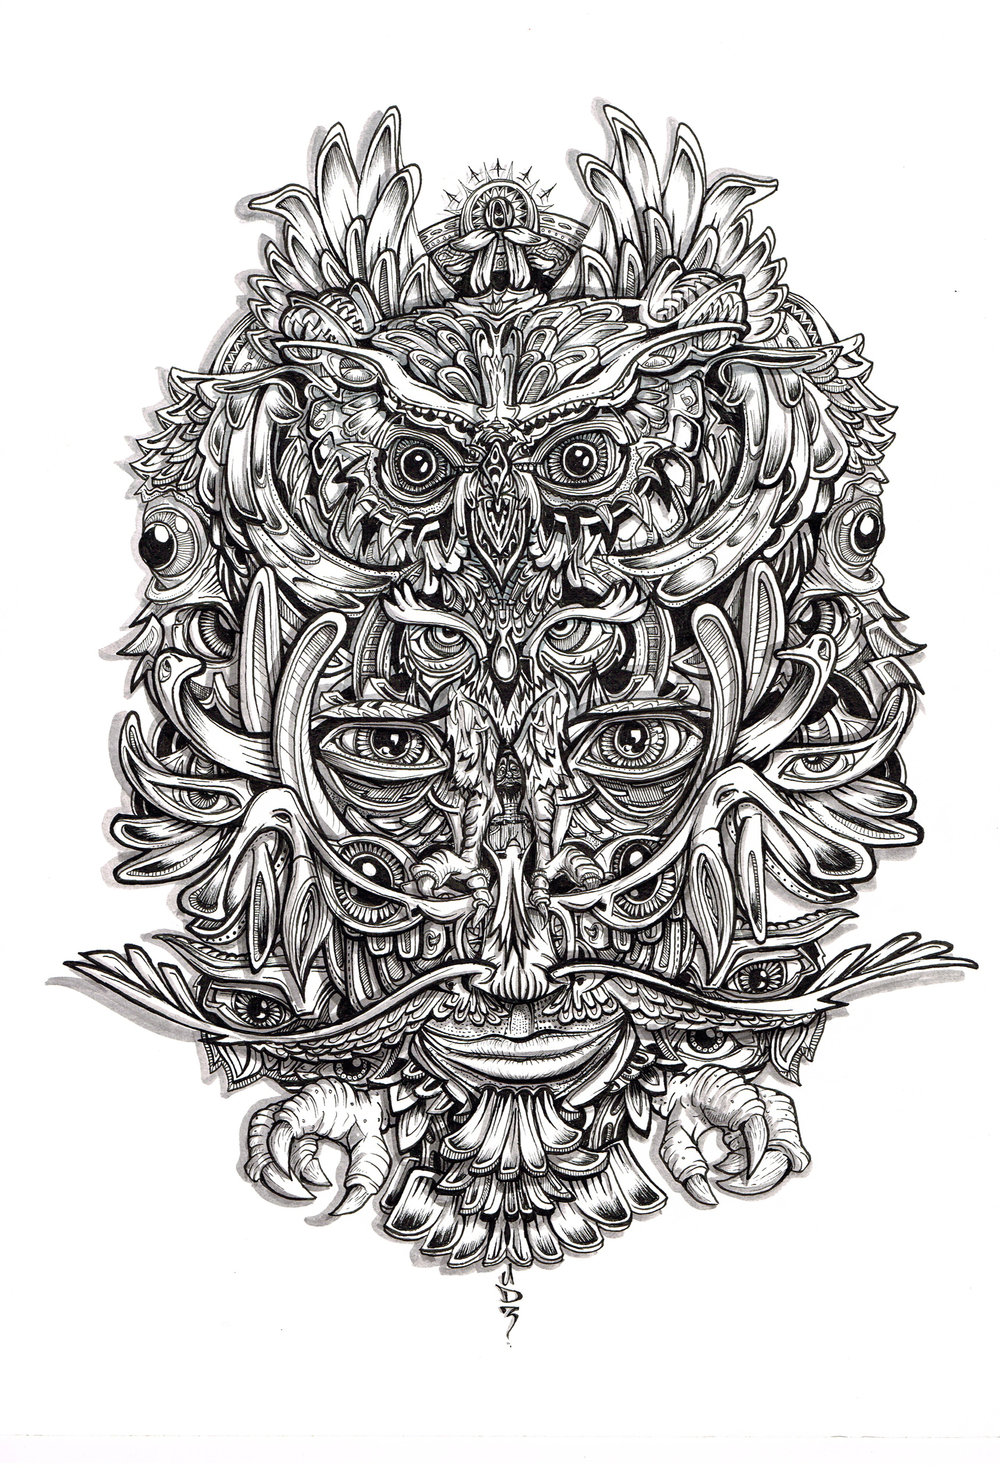 tribal-primitive-owl-black-and-white-illustration-drawing-eyes-feathers-costume-mask.jpg